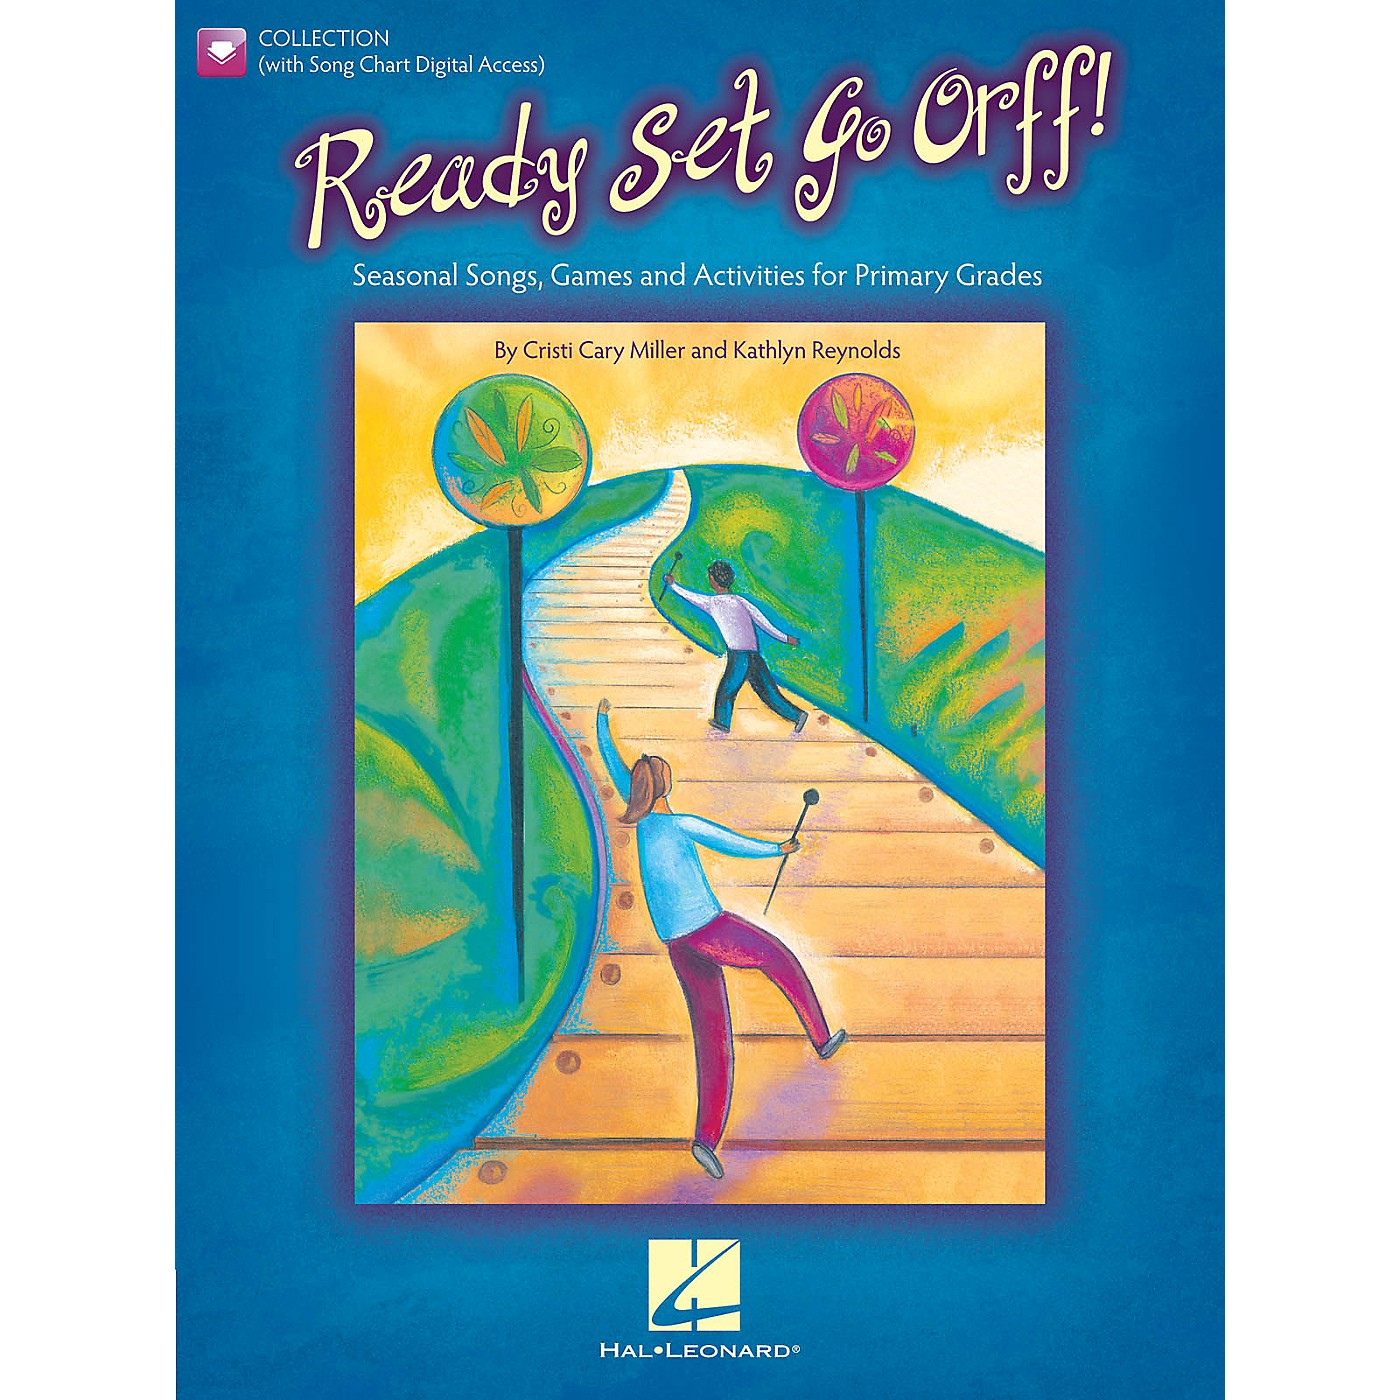 Hal Leonard Ready Set Go Orff! CHORAL Composed by Cristi Cary Miller thumbnail